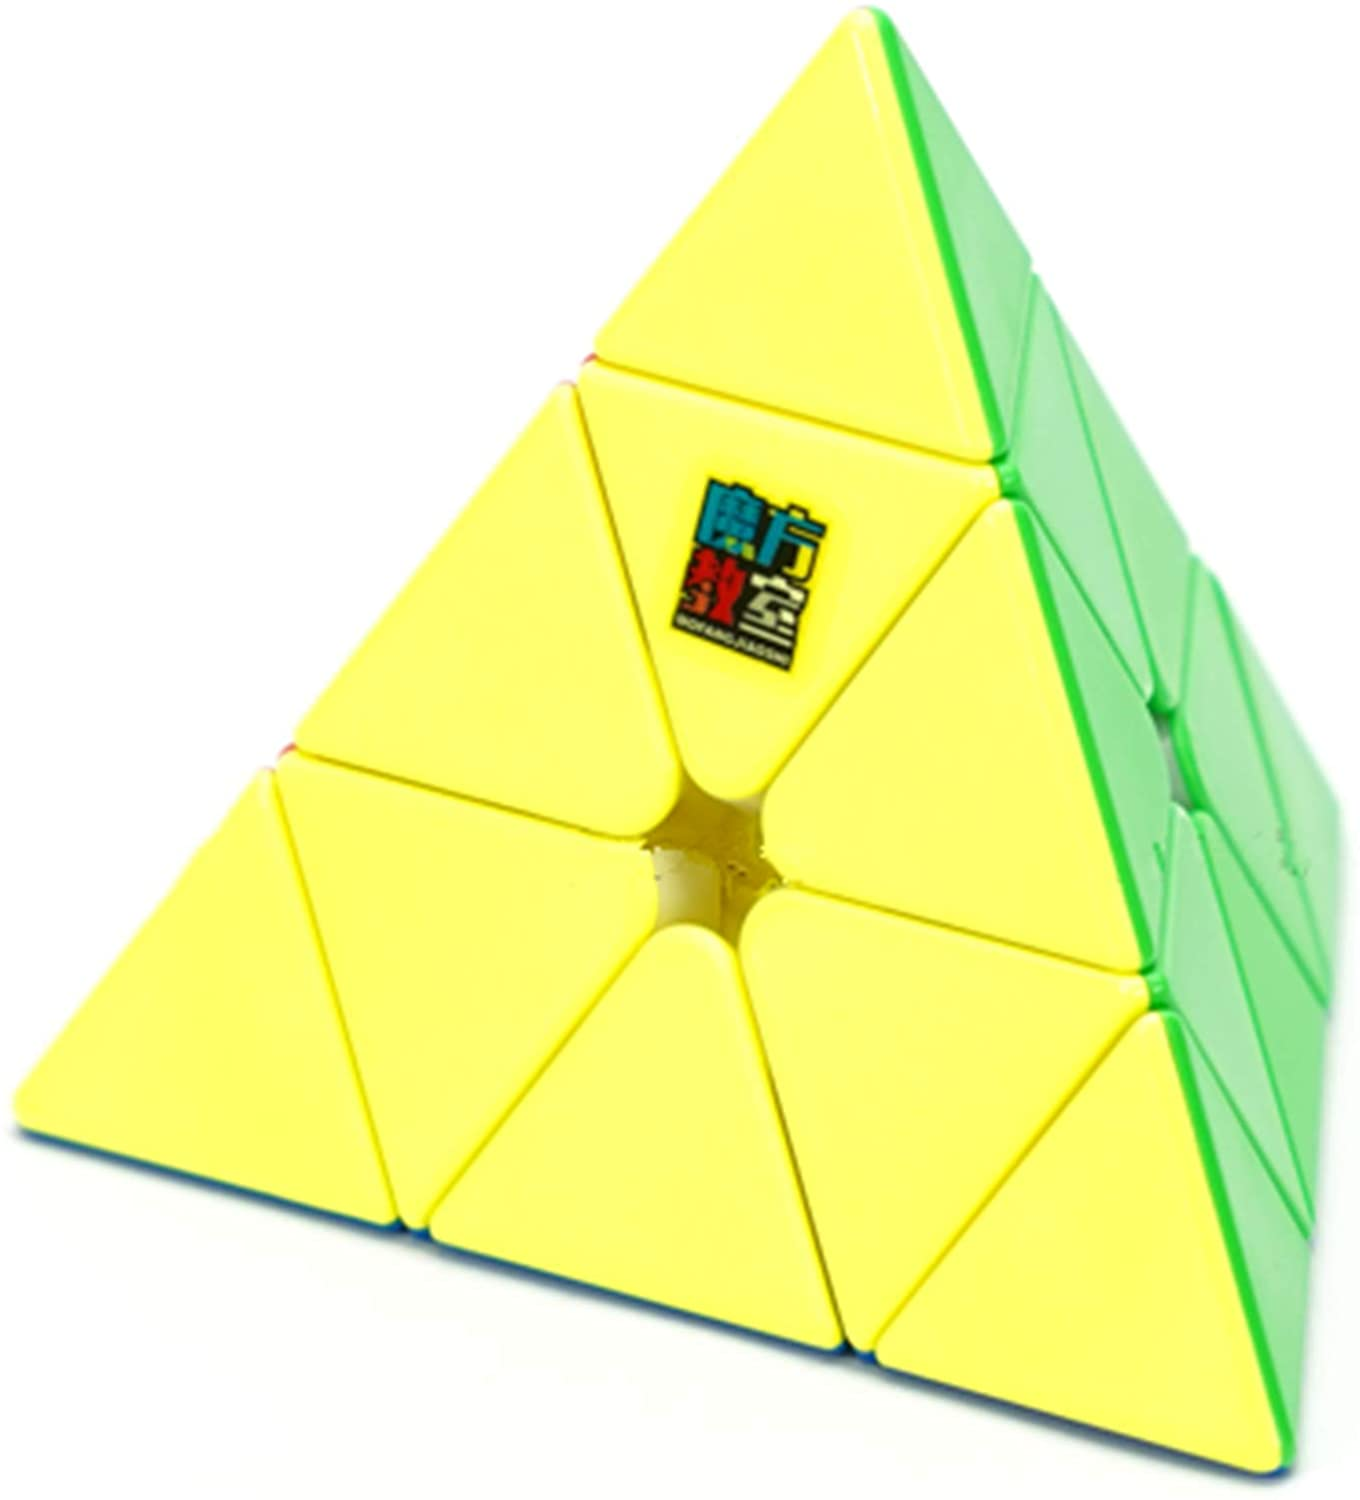 CuberSpeed Moyu Meilong pyraminx M Magnetic stickerless Speed Cube MFJS MEILONG Pyraminx M Speed Cube